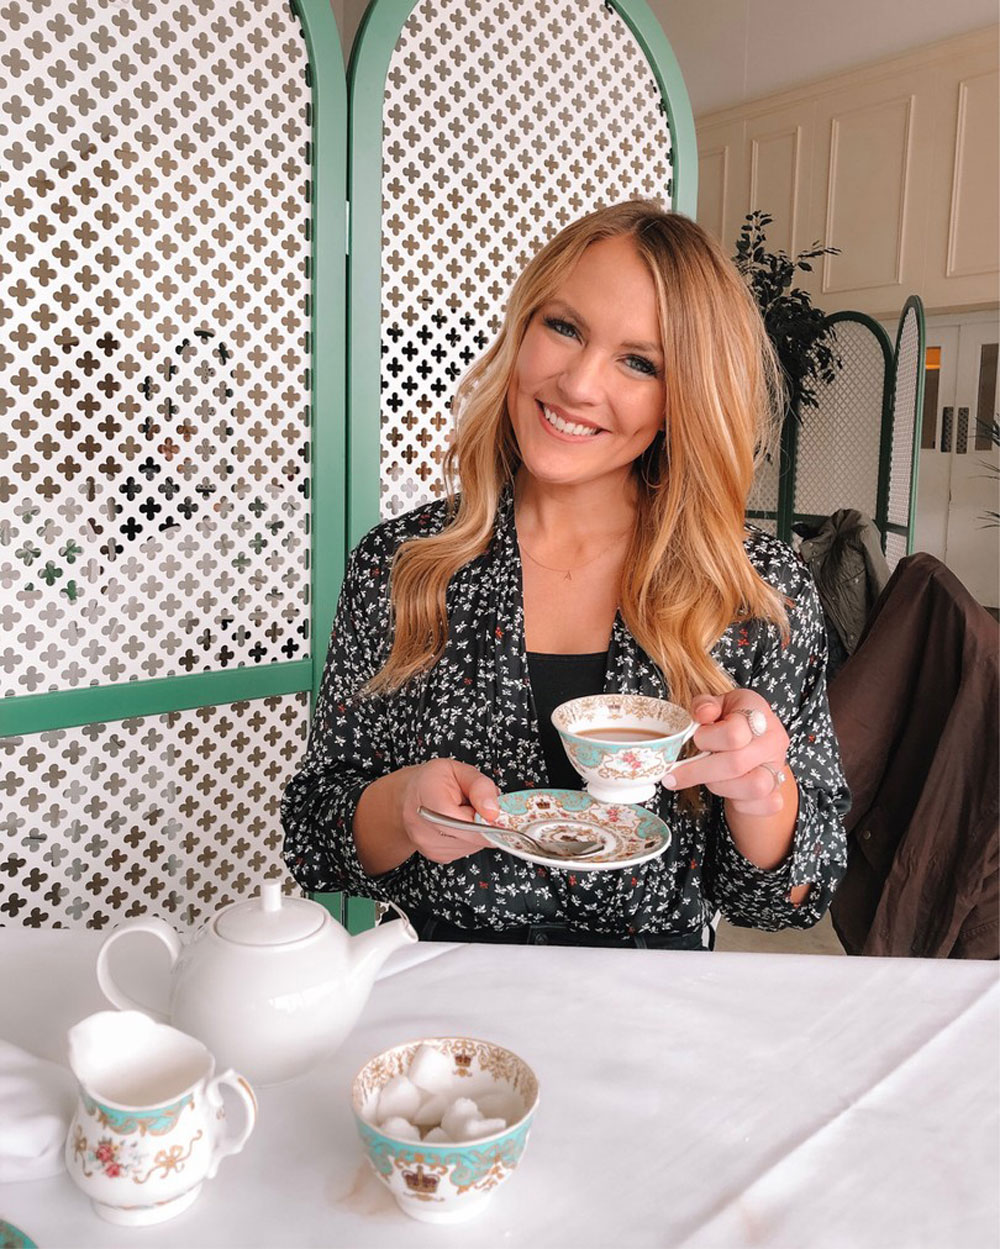 Blogger Amanda's OK shares What to Wear to Afternoon Tea in London